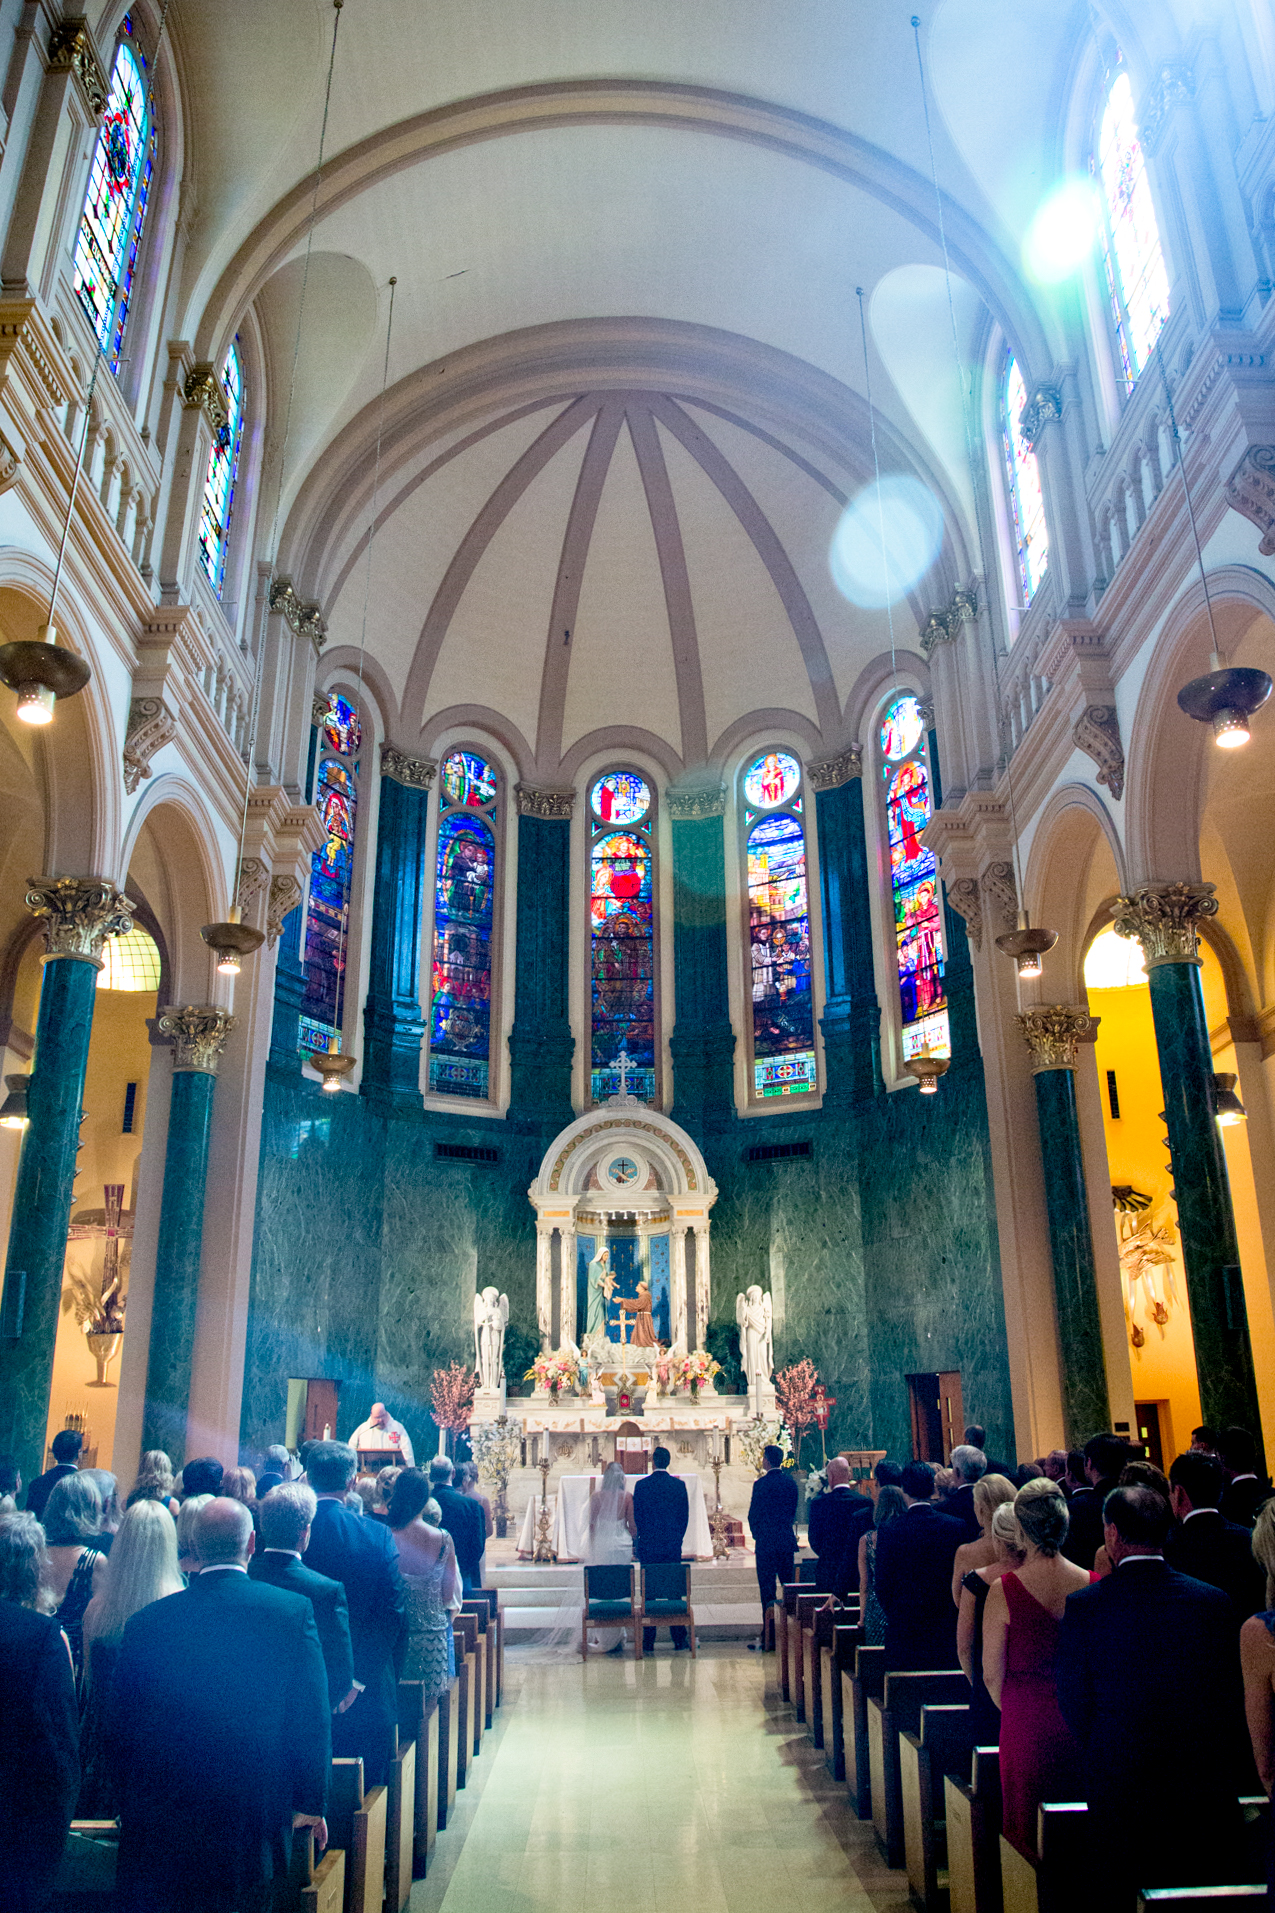 105_CarlyGaebe_SteadfastStudio_WeddingPhotography_Readyluck_NewYorkCity_Manhattan_Soho_ChurchOfSaintAnthony_Bride_Groom_Vows.jpg